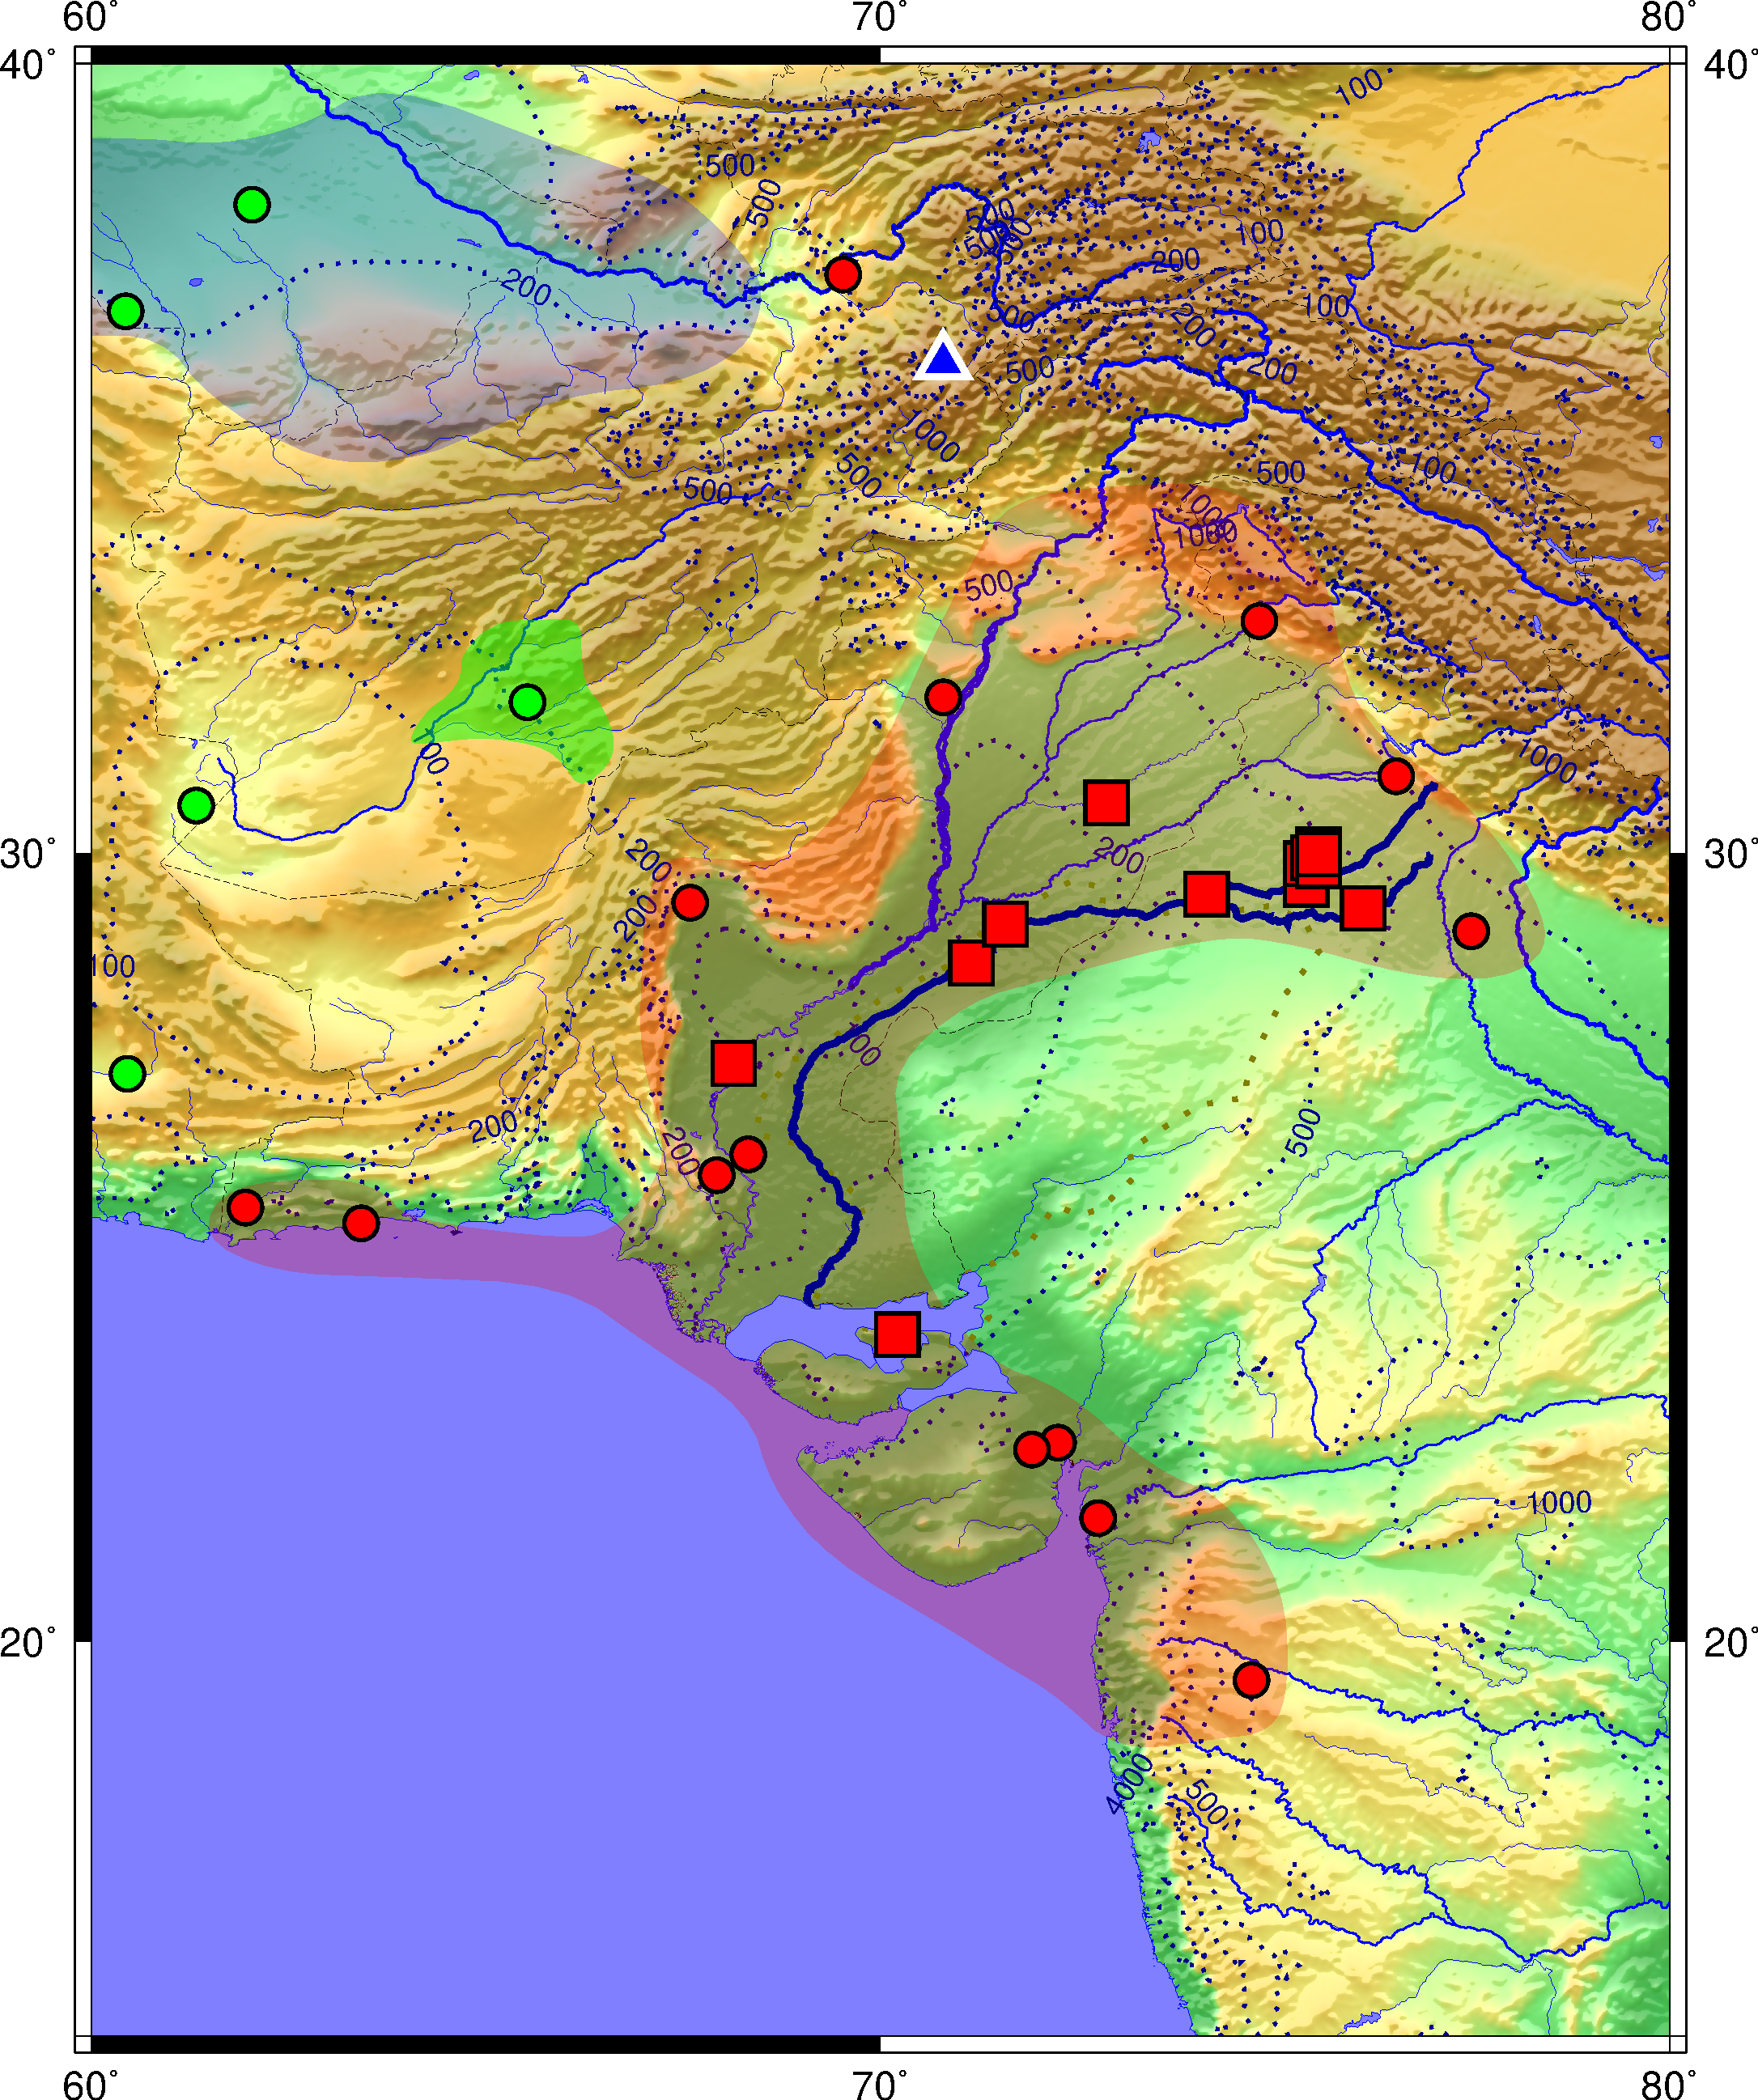 File:Indus civilization info map.png - Wikimedia Commons on gulf of khambhat on map, yellow river on map, bangladesh on map, jordan river on map, himalayan mountains on map, kashmir on map, great indian desert on map, lena river on map, himalayas on map, persian gulf on map, krishna river on map, eastern ghats on map, deccan plateau on map, ganges river on map, gobi desert on map, japan on map, irrawaddy river on map, yangzte river on map, aral sea on map, indian ocean on map,